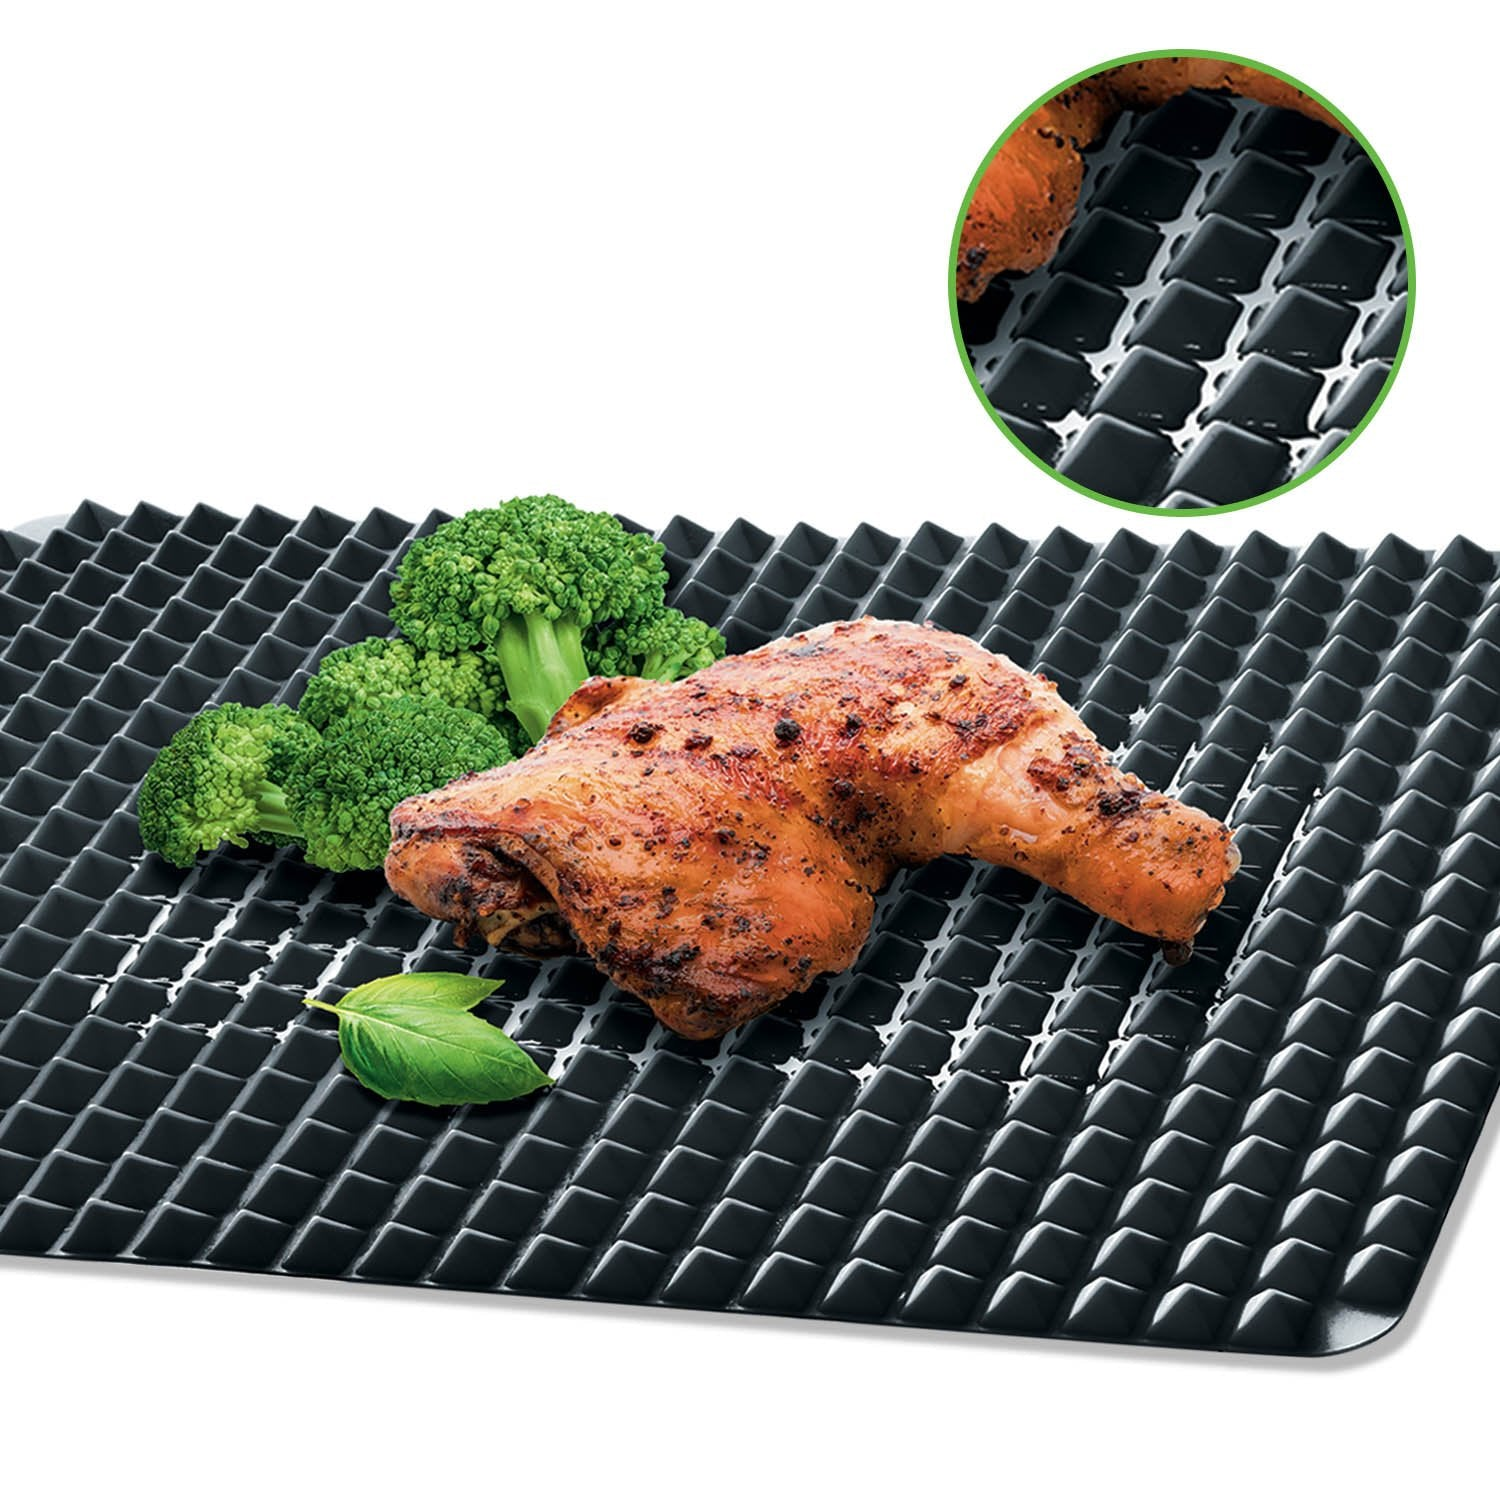 Kleva Dry Fry Mat TV SPECIAL - Turn Your Oven Into An Air Fryer For Healthier Oil FREE Cooking!